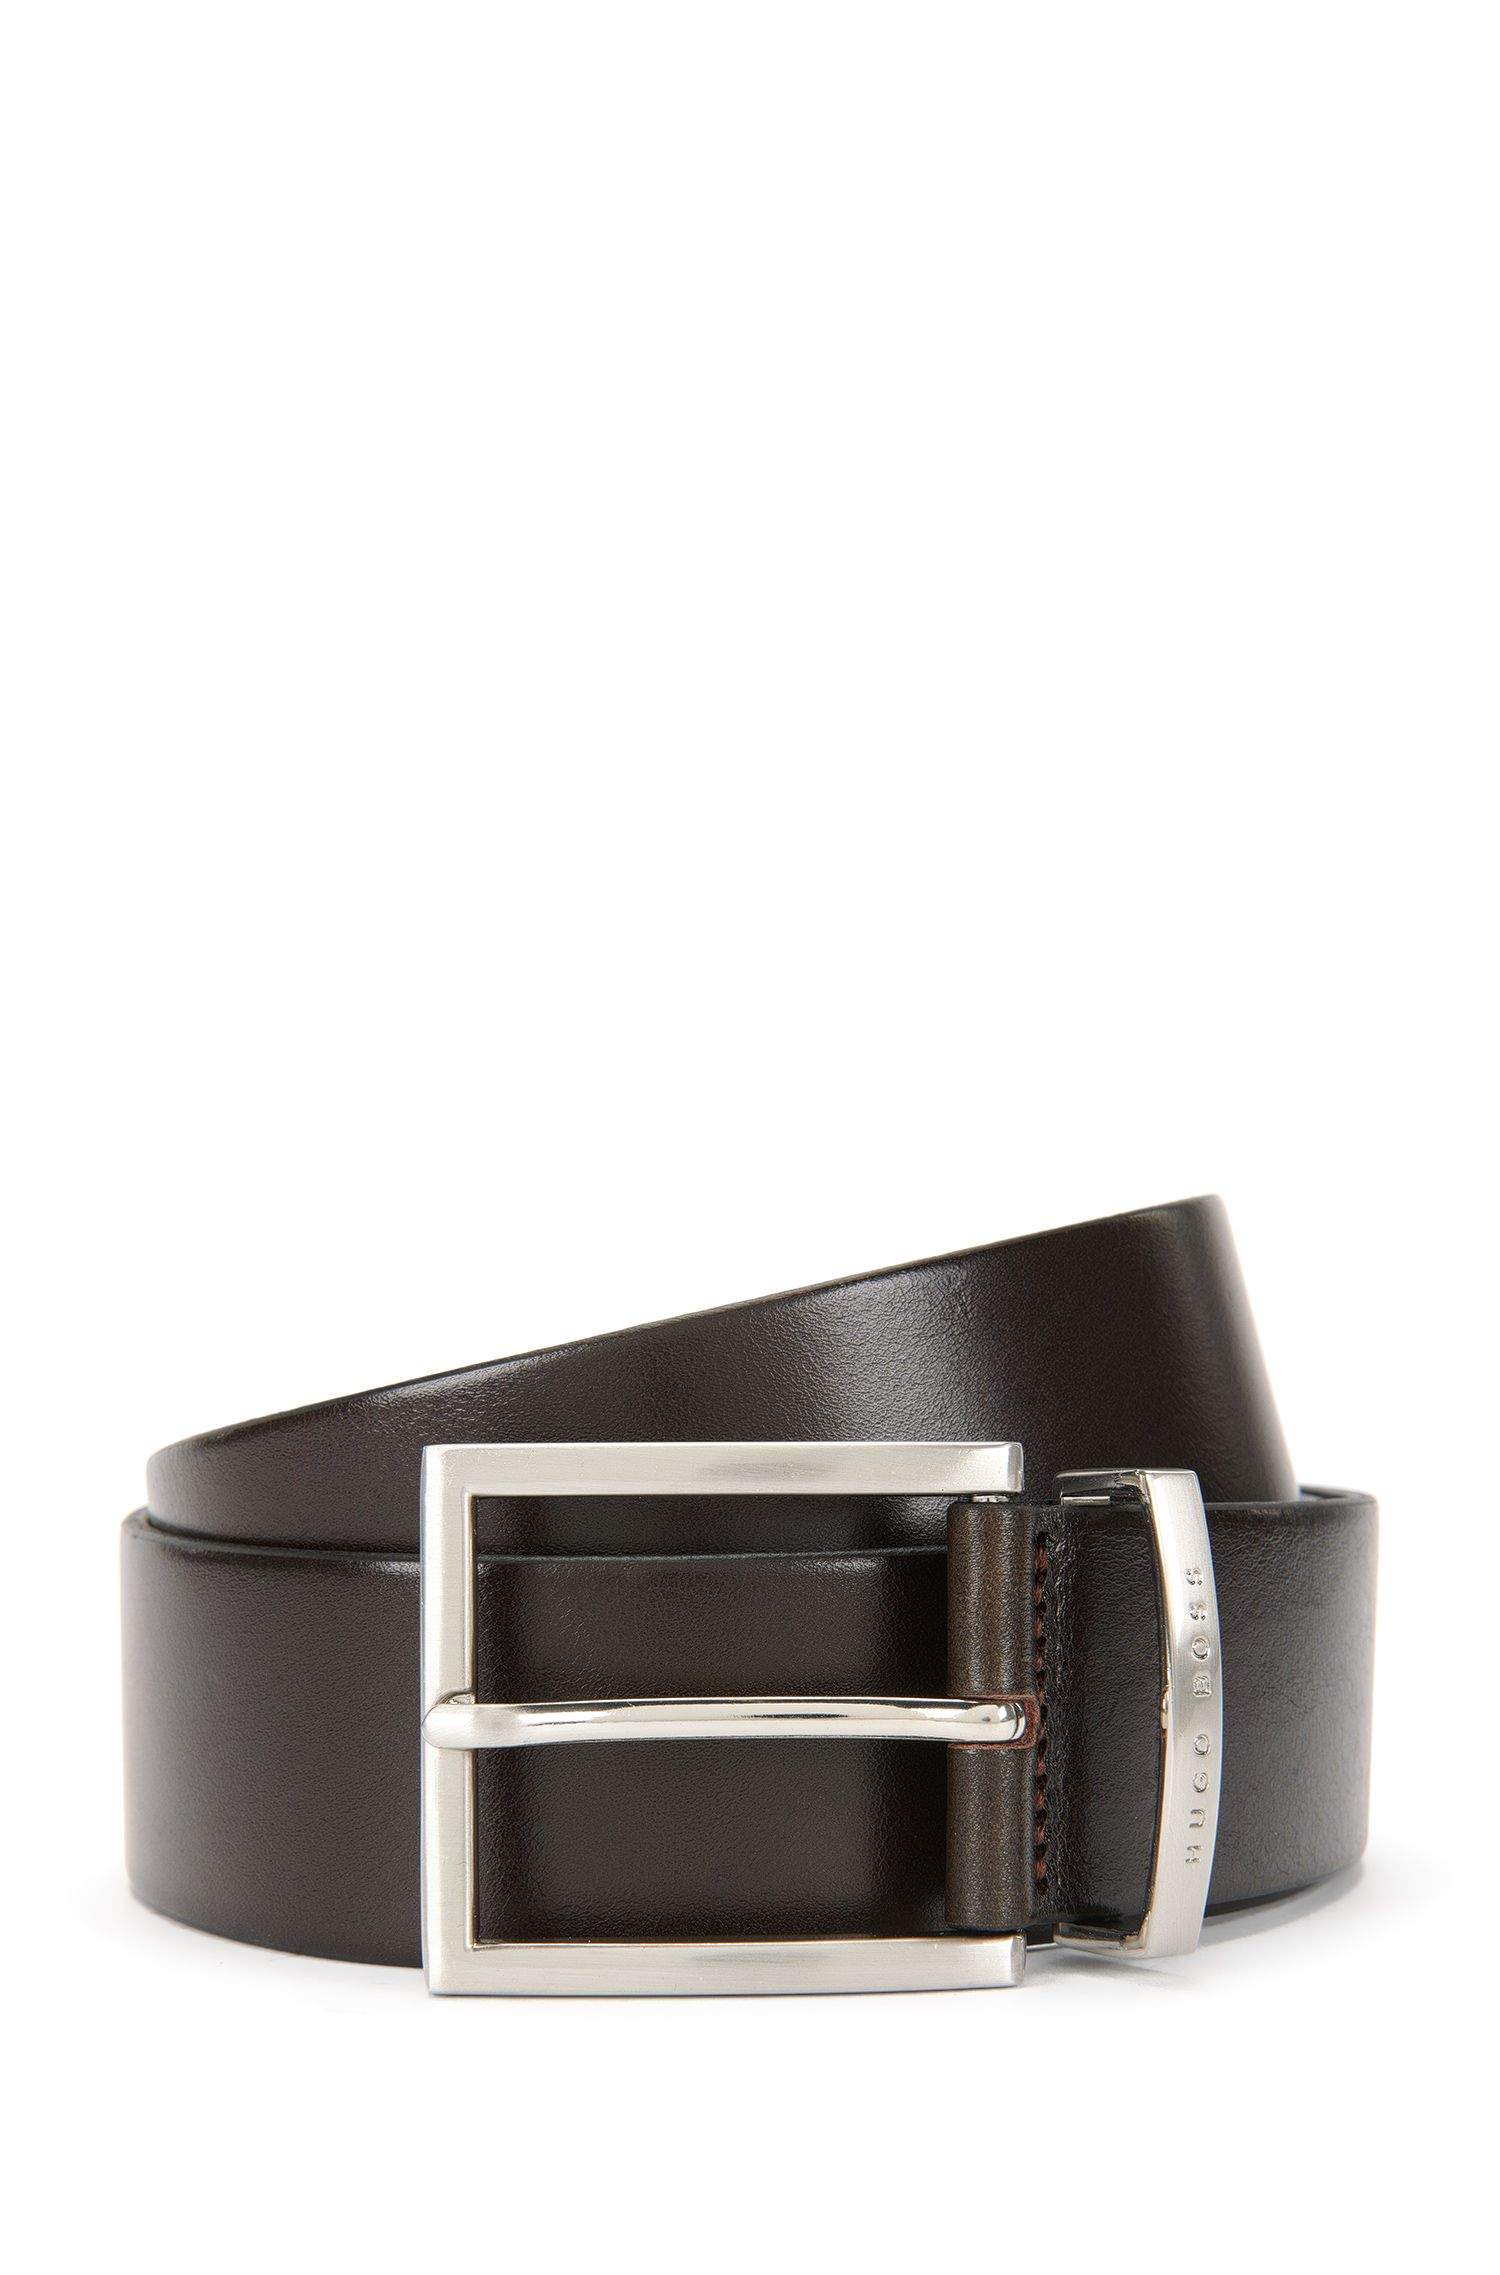 Leather belt with silver pin buckle